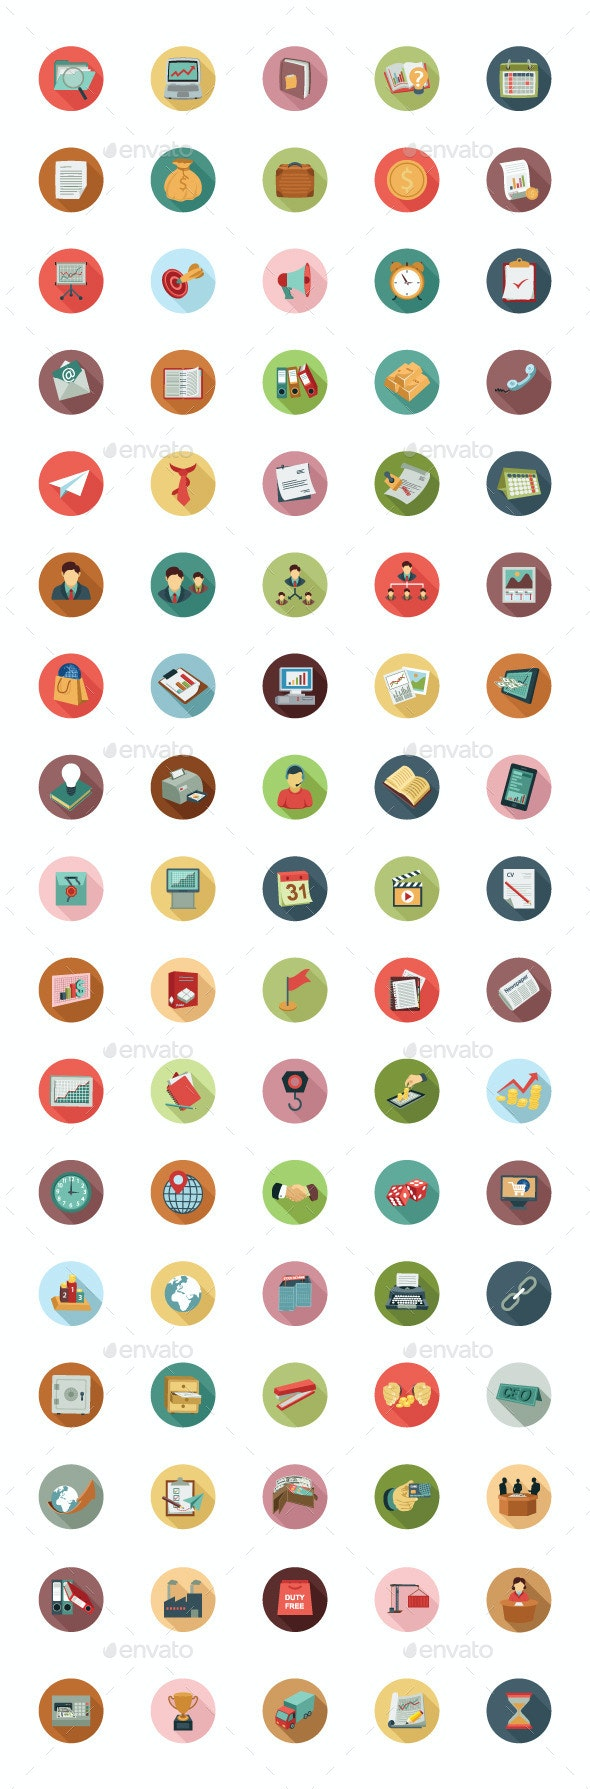 85 Business Colored Flat Icons